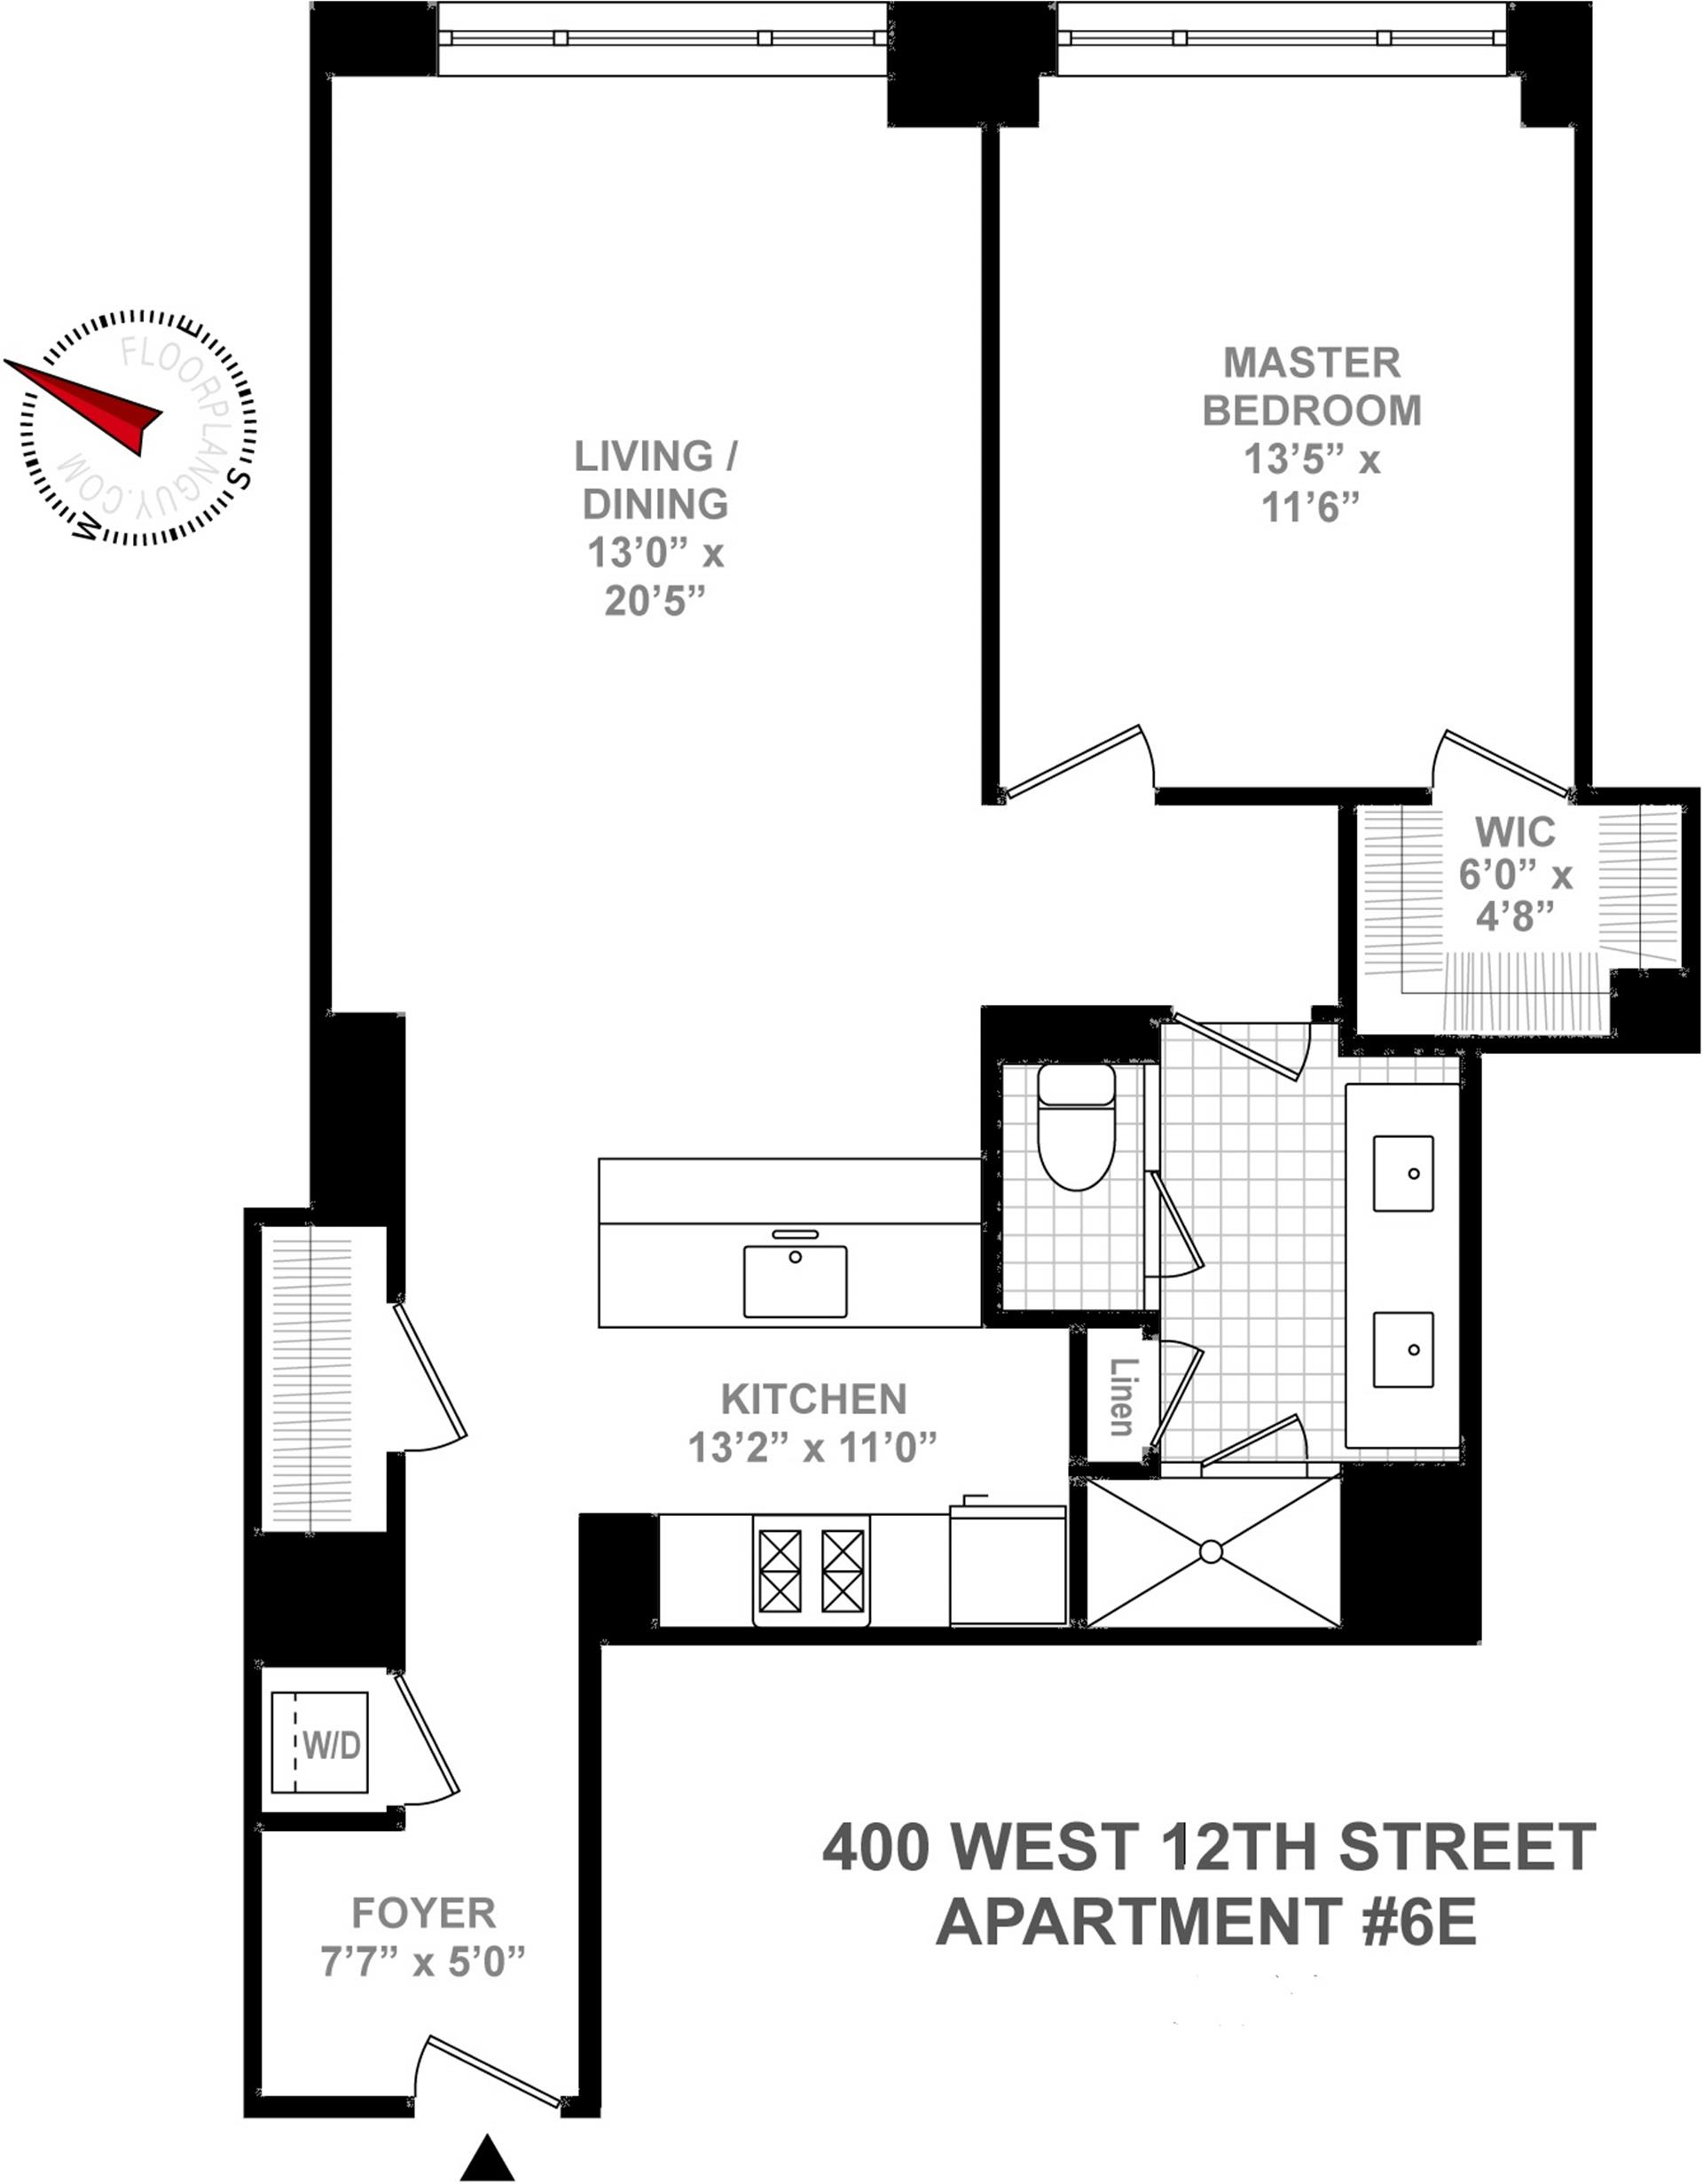 Floor plan of Superior Ink Condominiums, 400 West 12th St, 6E - West Village - Meatpacking District, New York